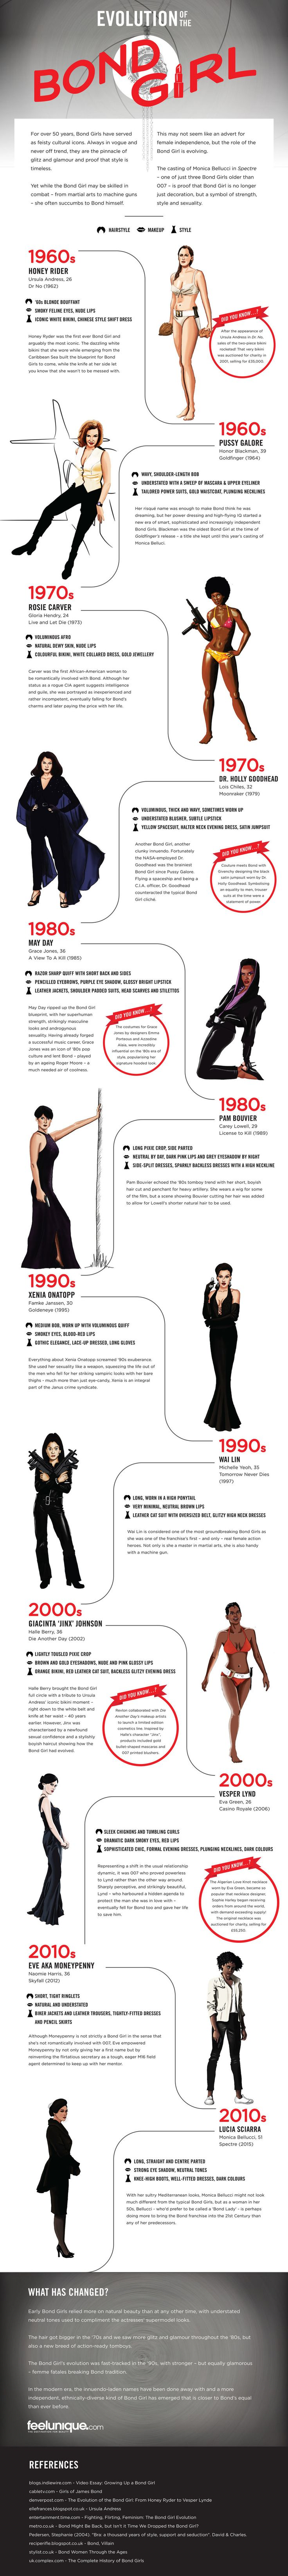 See The Evolution Of The Bond Girl In One Awesome Infographic